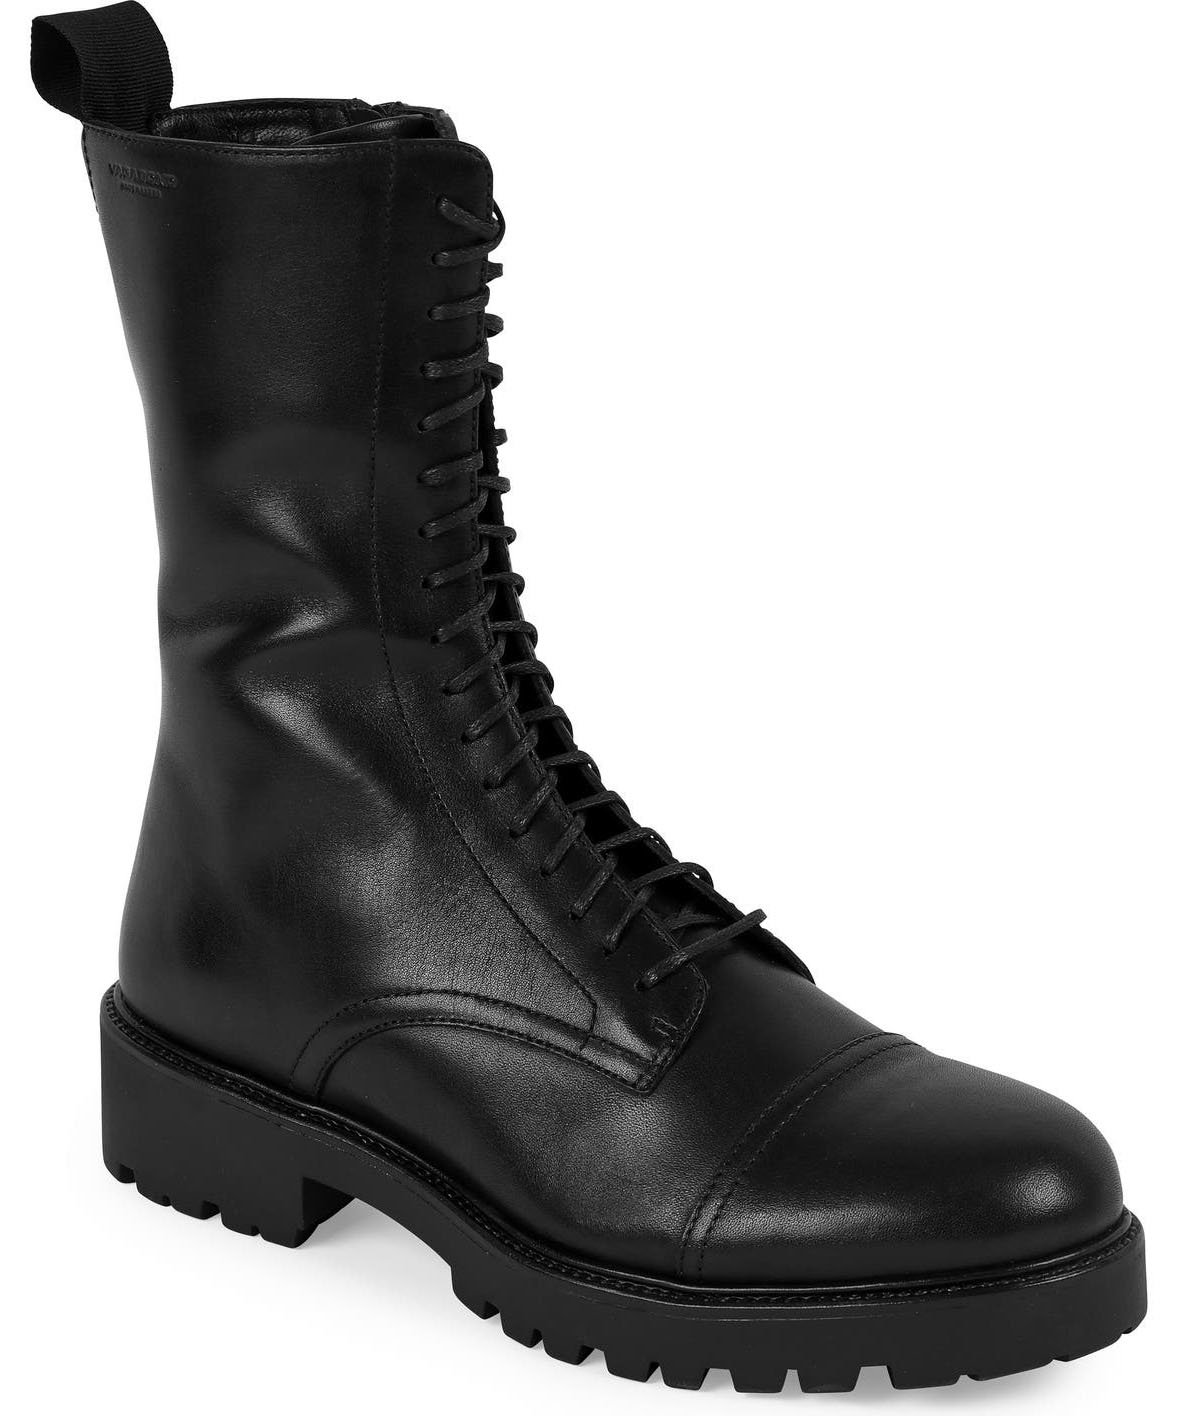 Vagabond Shoemakers' Kenova combat boots have the classic combat boots features—from the leather upper to the cap toes, lace-up fastenings, and lug soles